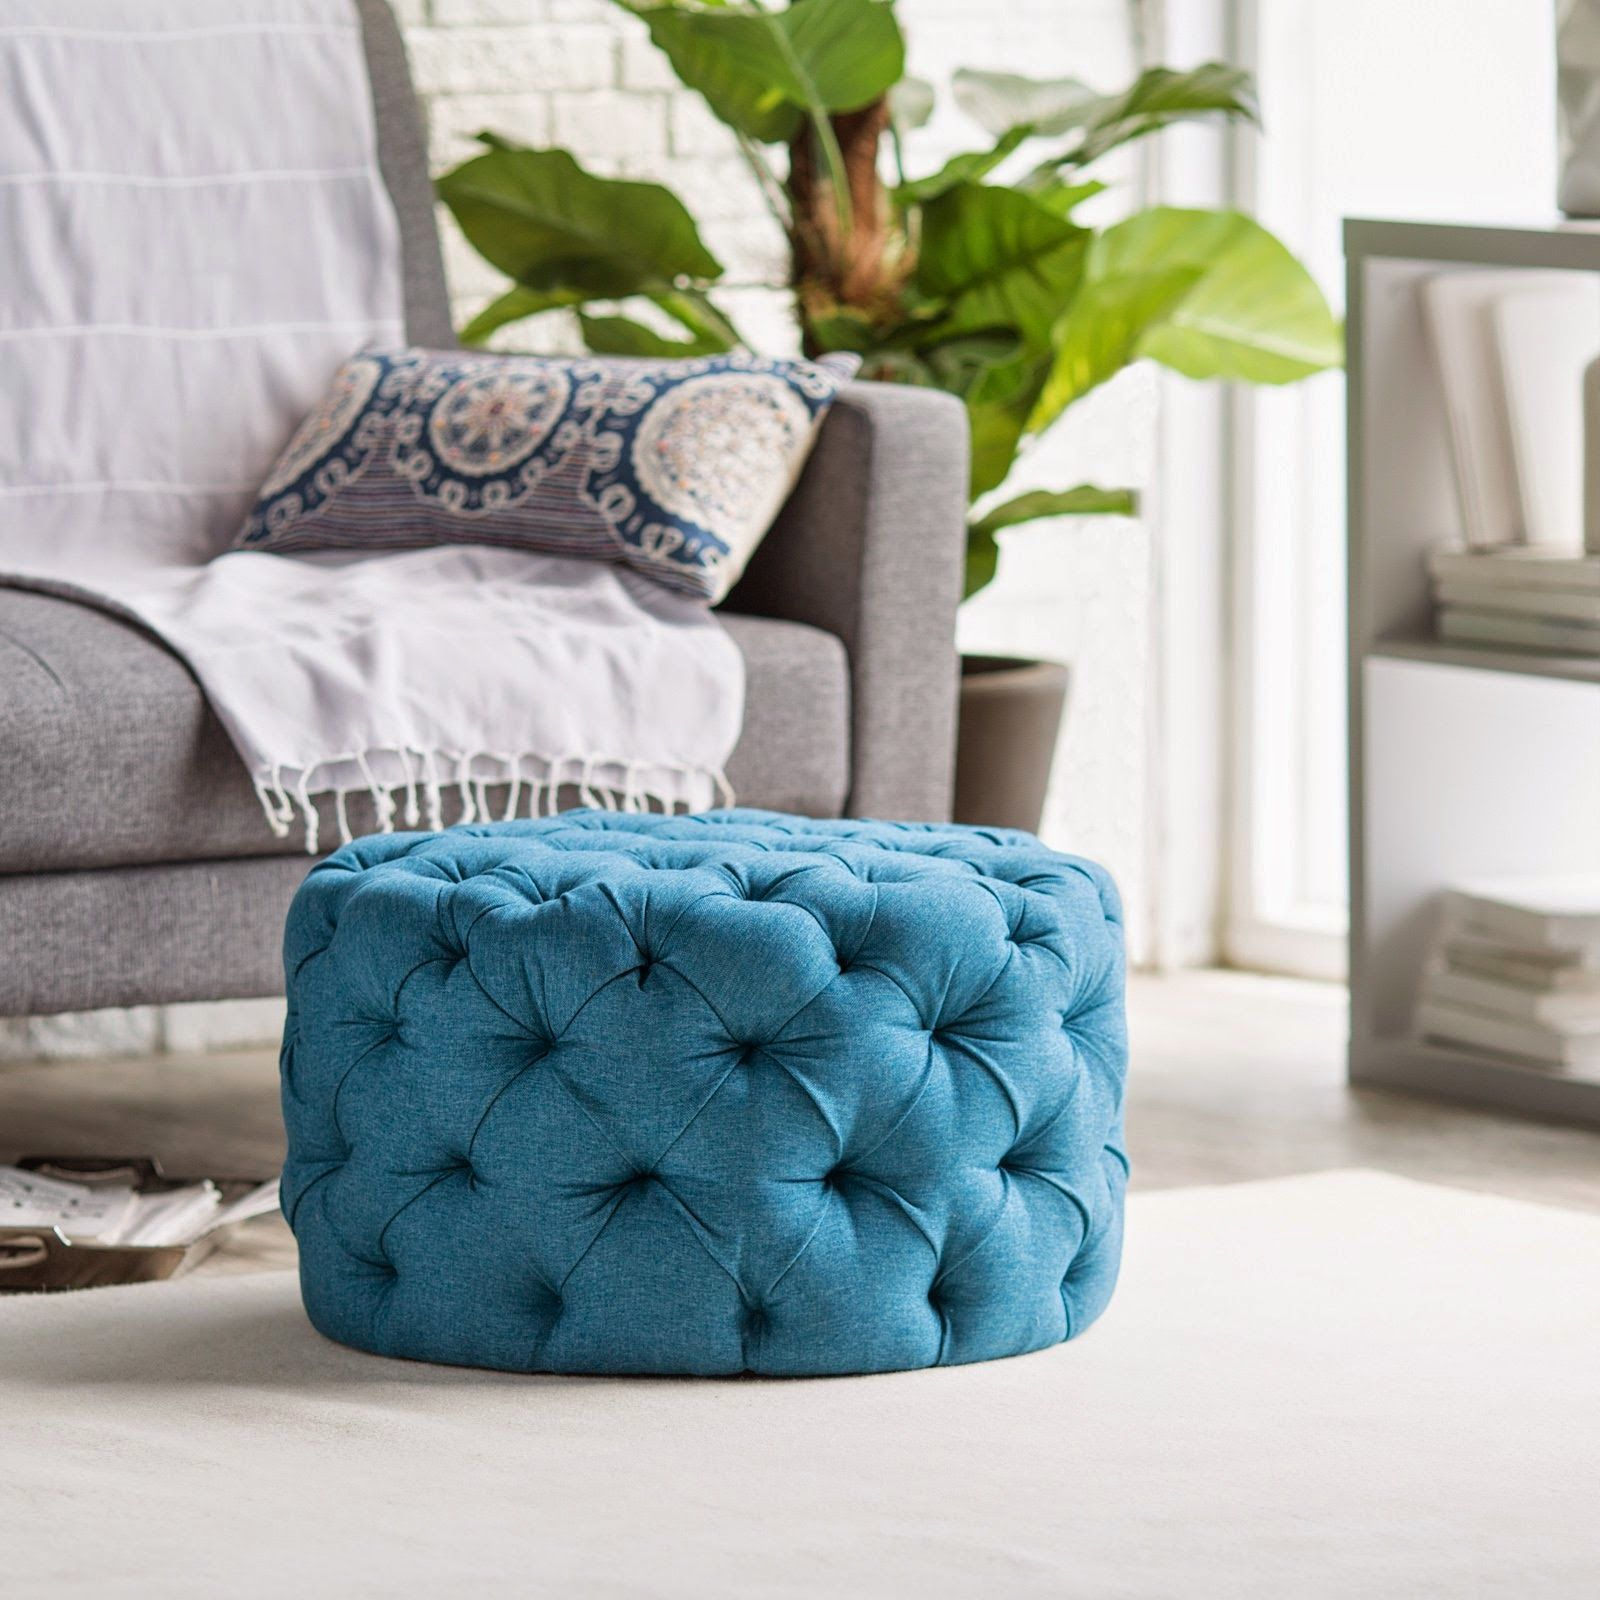 Fabulous Finds Round Tufted Ottoman For Less Than 150